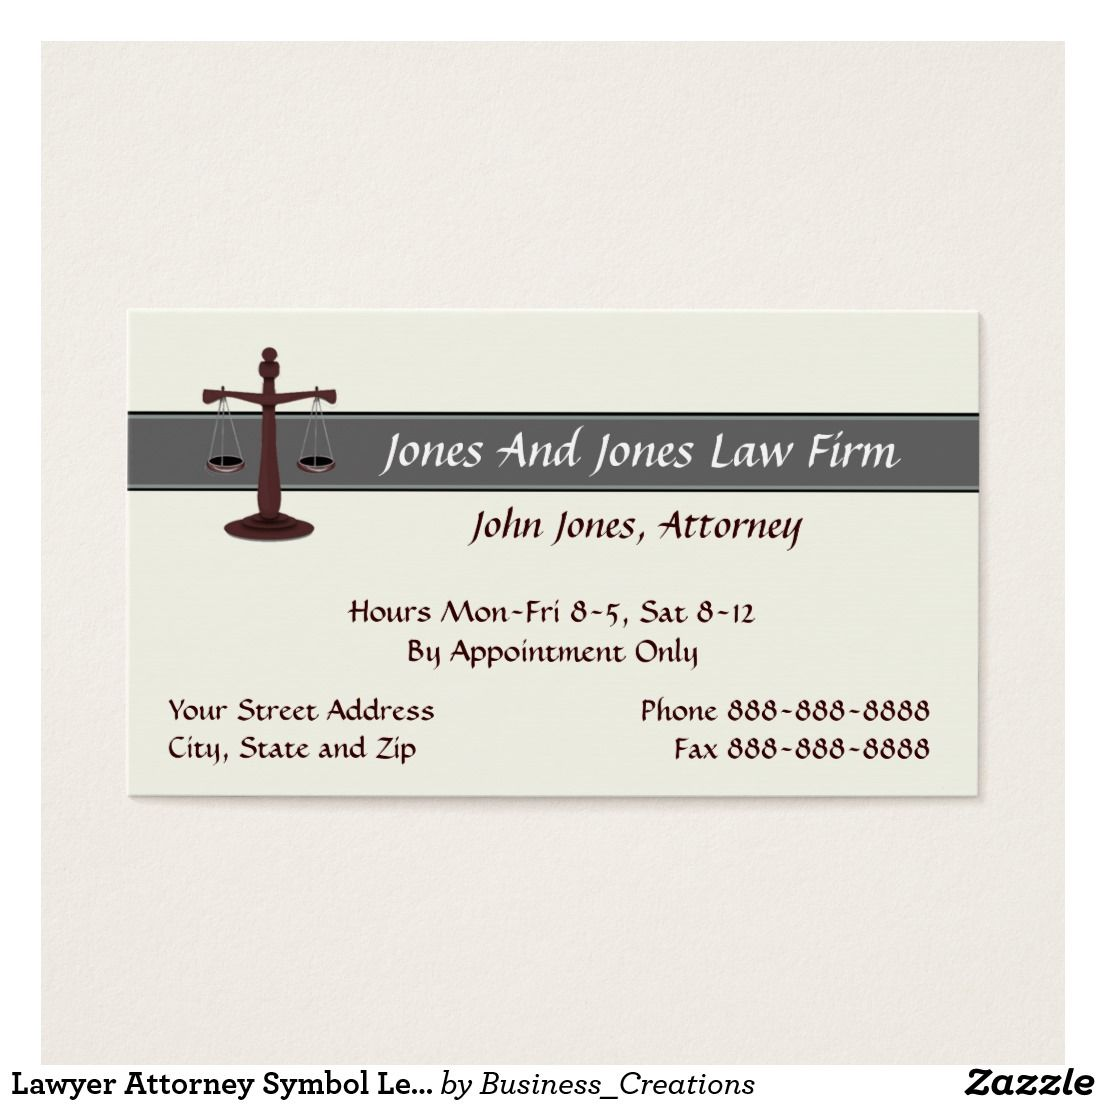 Lawyer Attorney Symbol Legal Business Card Legal Business And Symbols